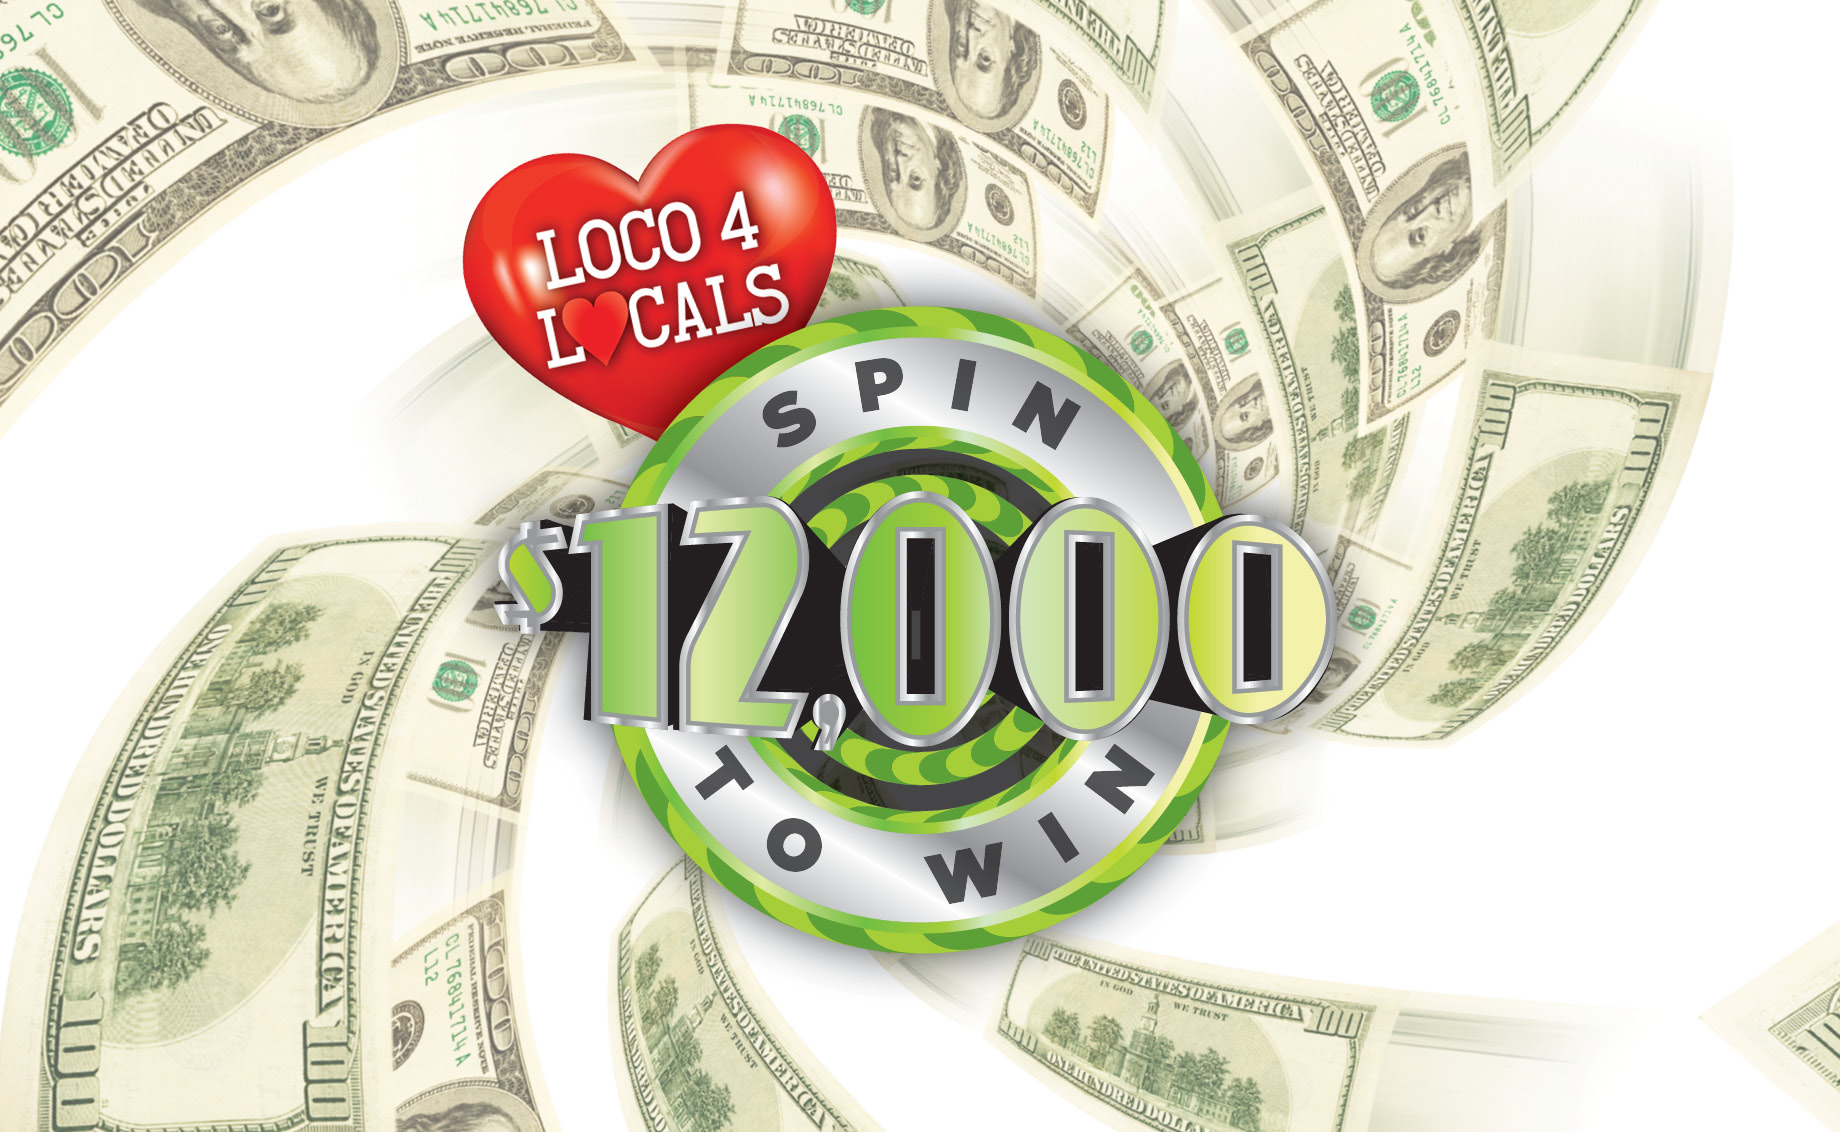 Loco 4 Locals- $12,000 Spin to Win